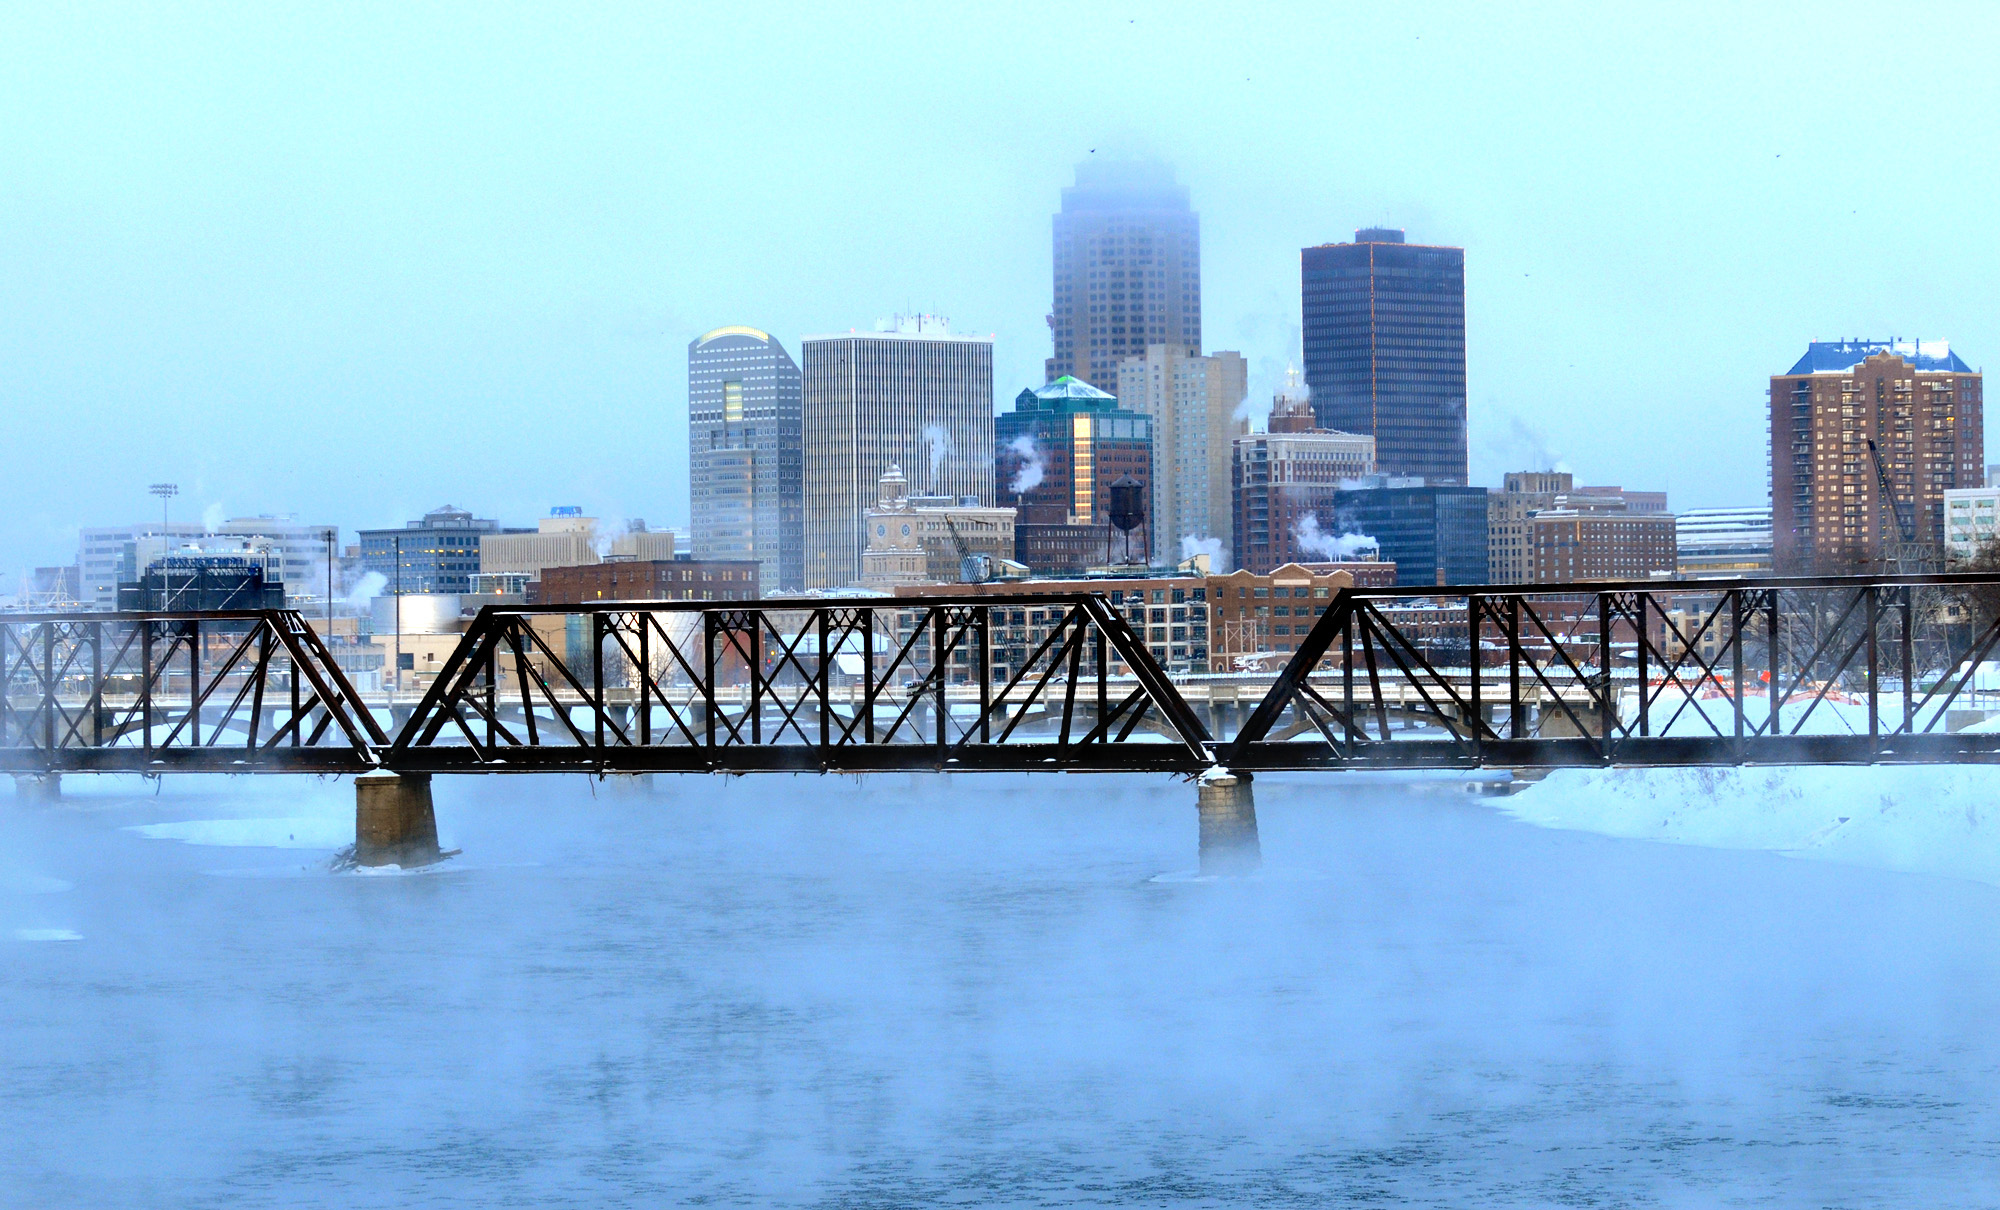 The Des Moines City Council unanimously voted this week in favor of a resolution that sets a goal of reaching 24/7 carbon-free electricity by 2035. Credit: Steve Pope/Getty Images